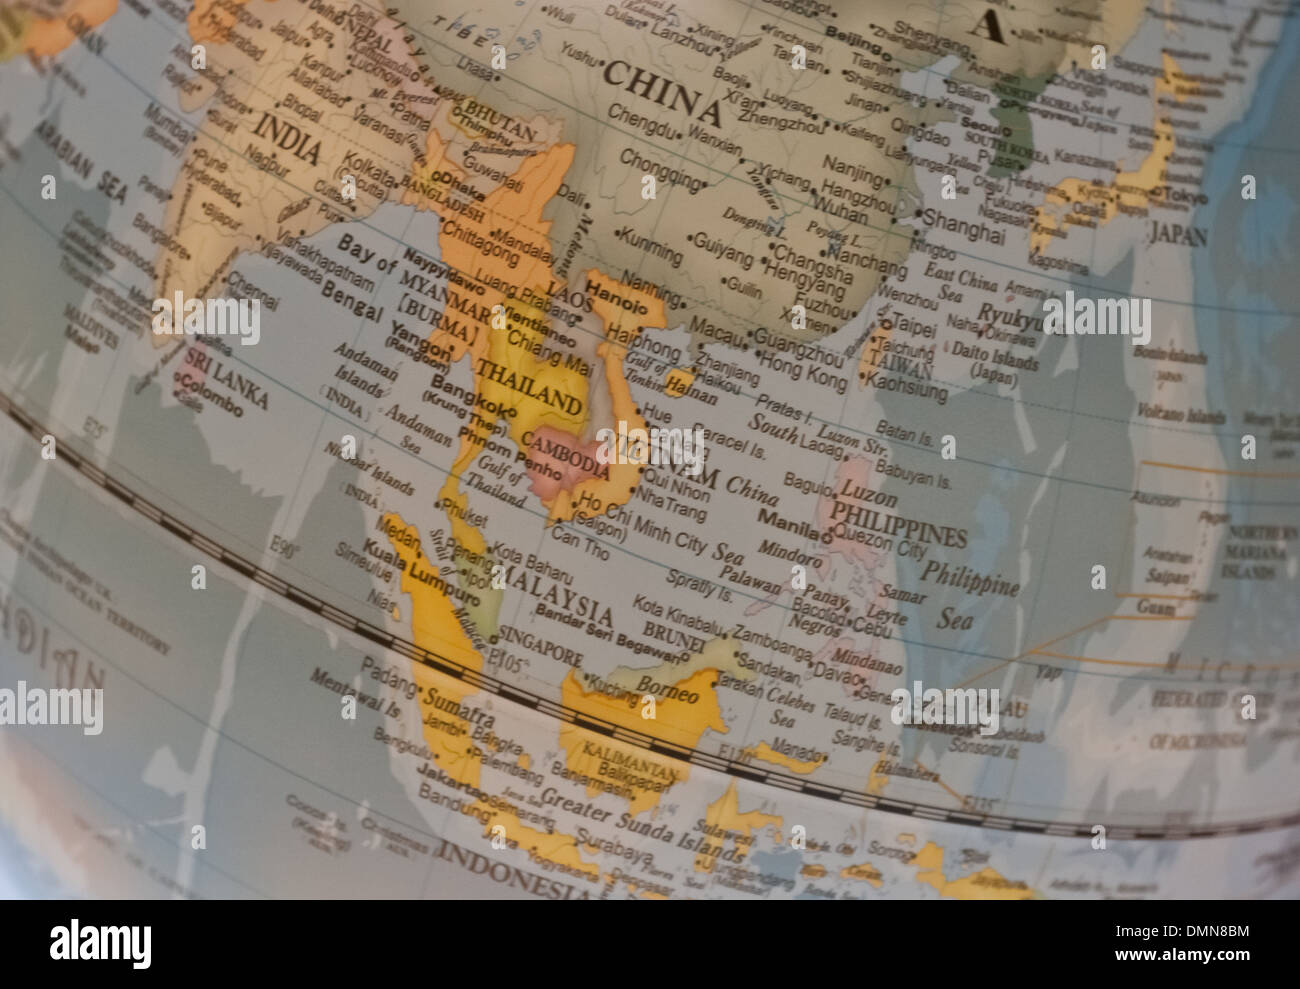 South East Asia countries map on a globe - Stock Image